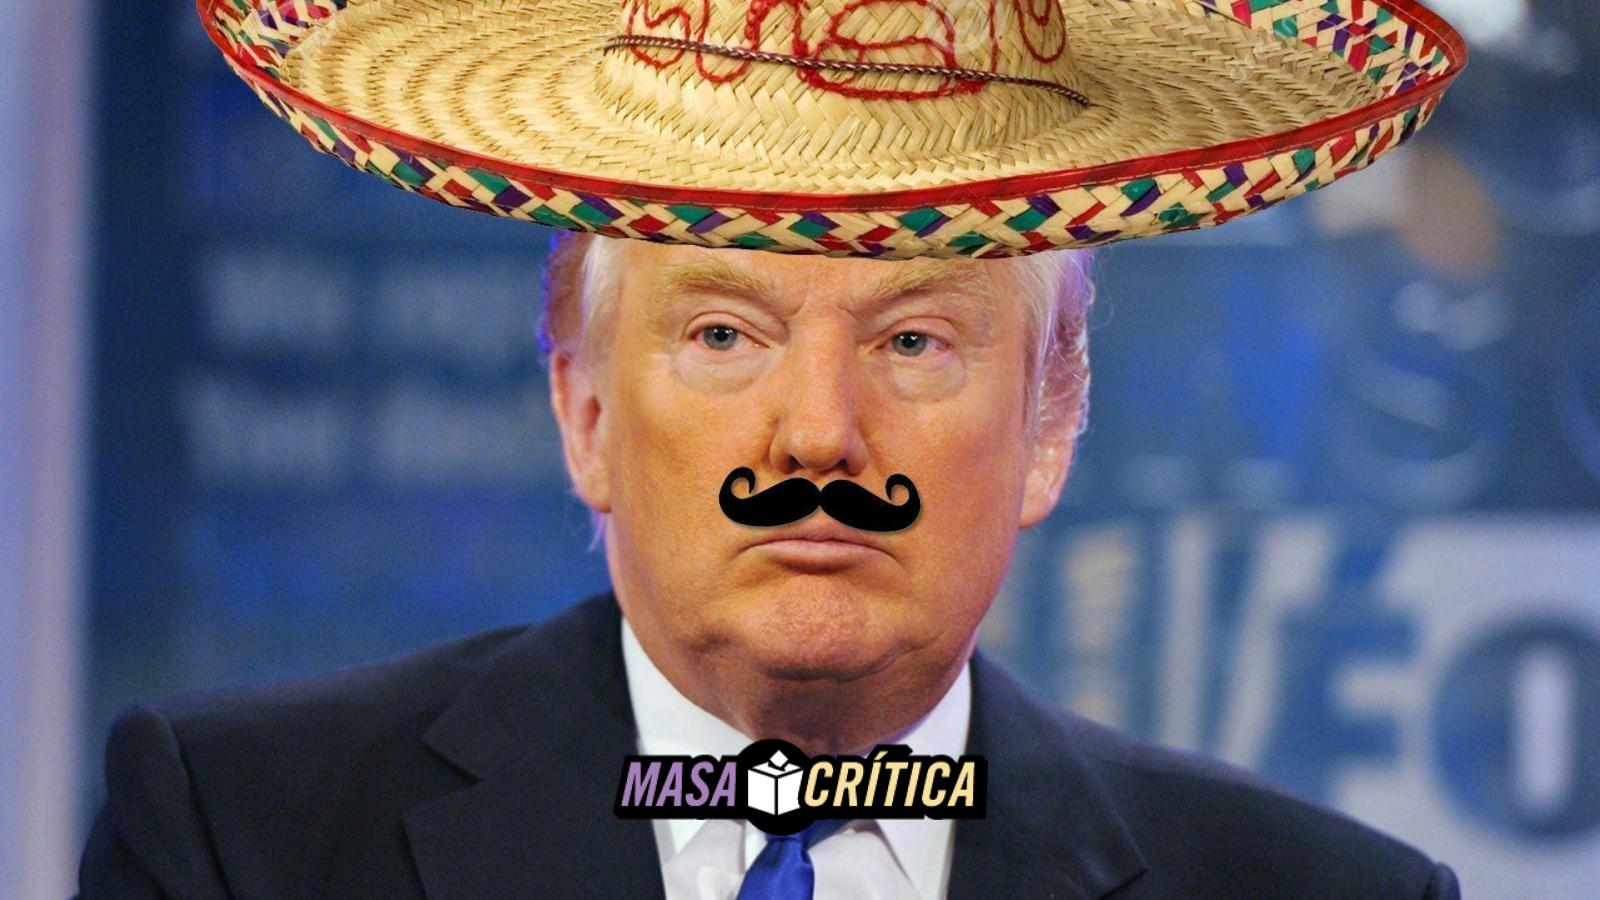 Bronco trump mexicano